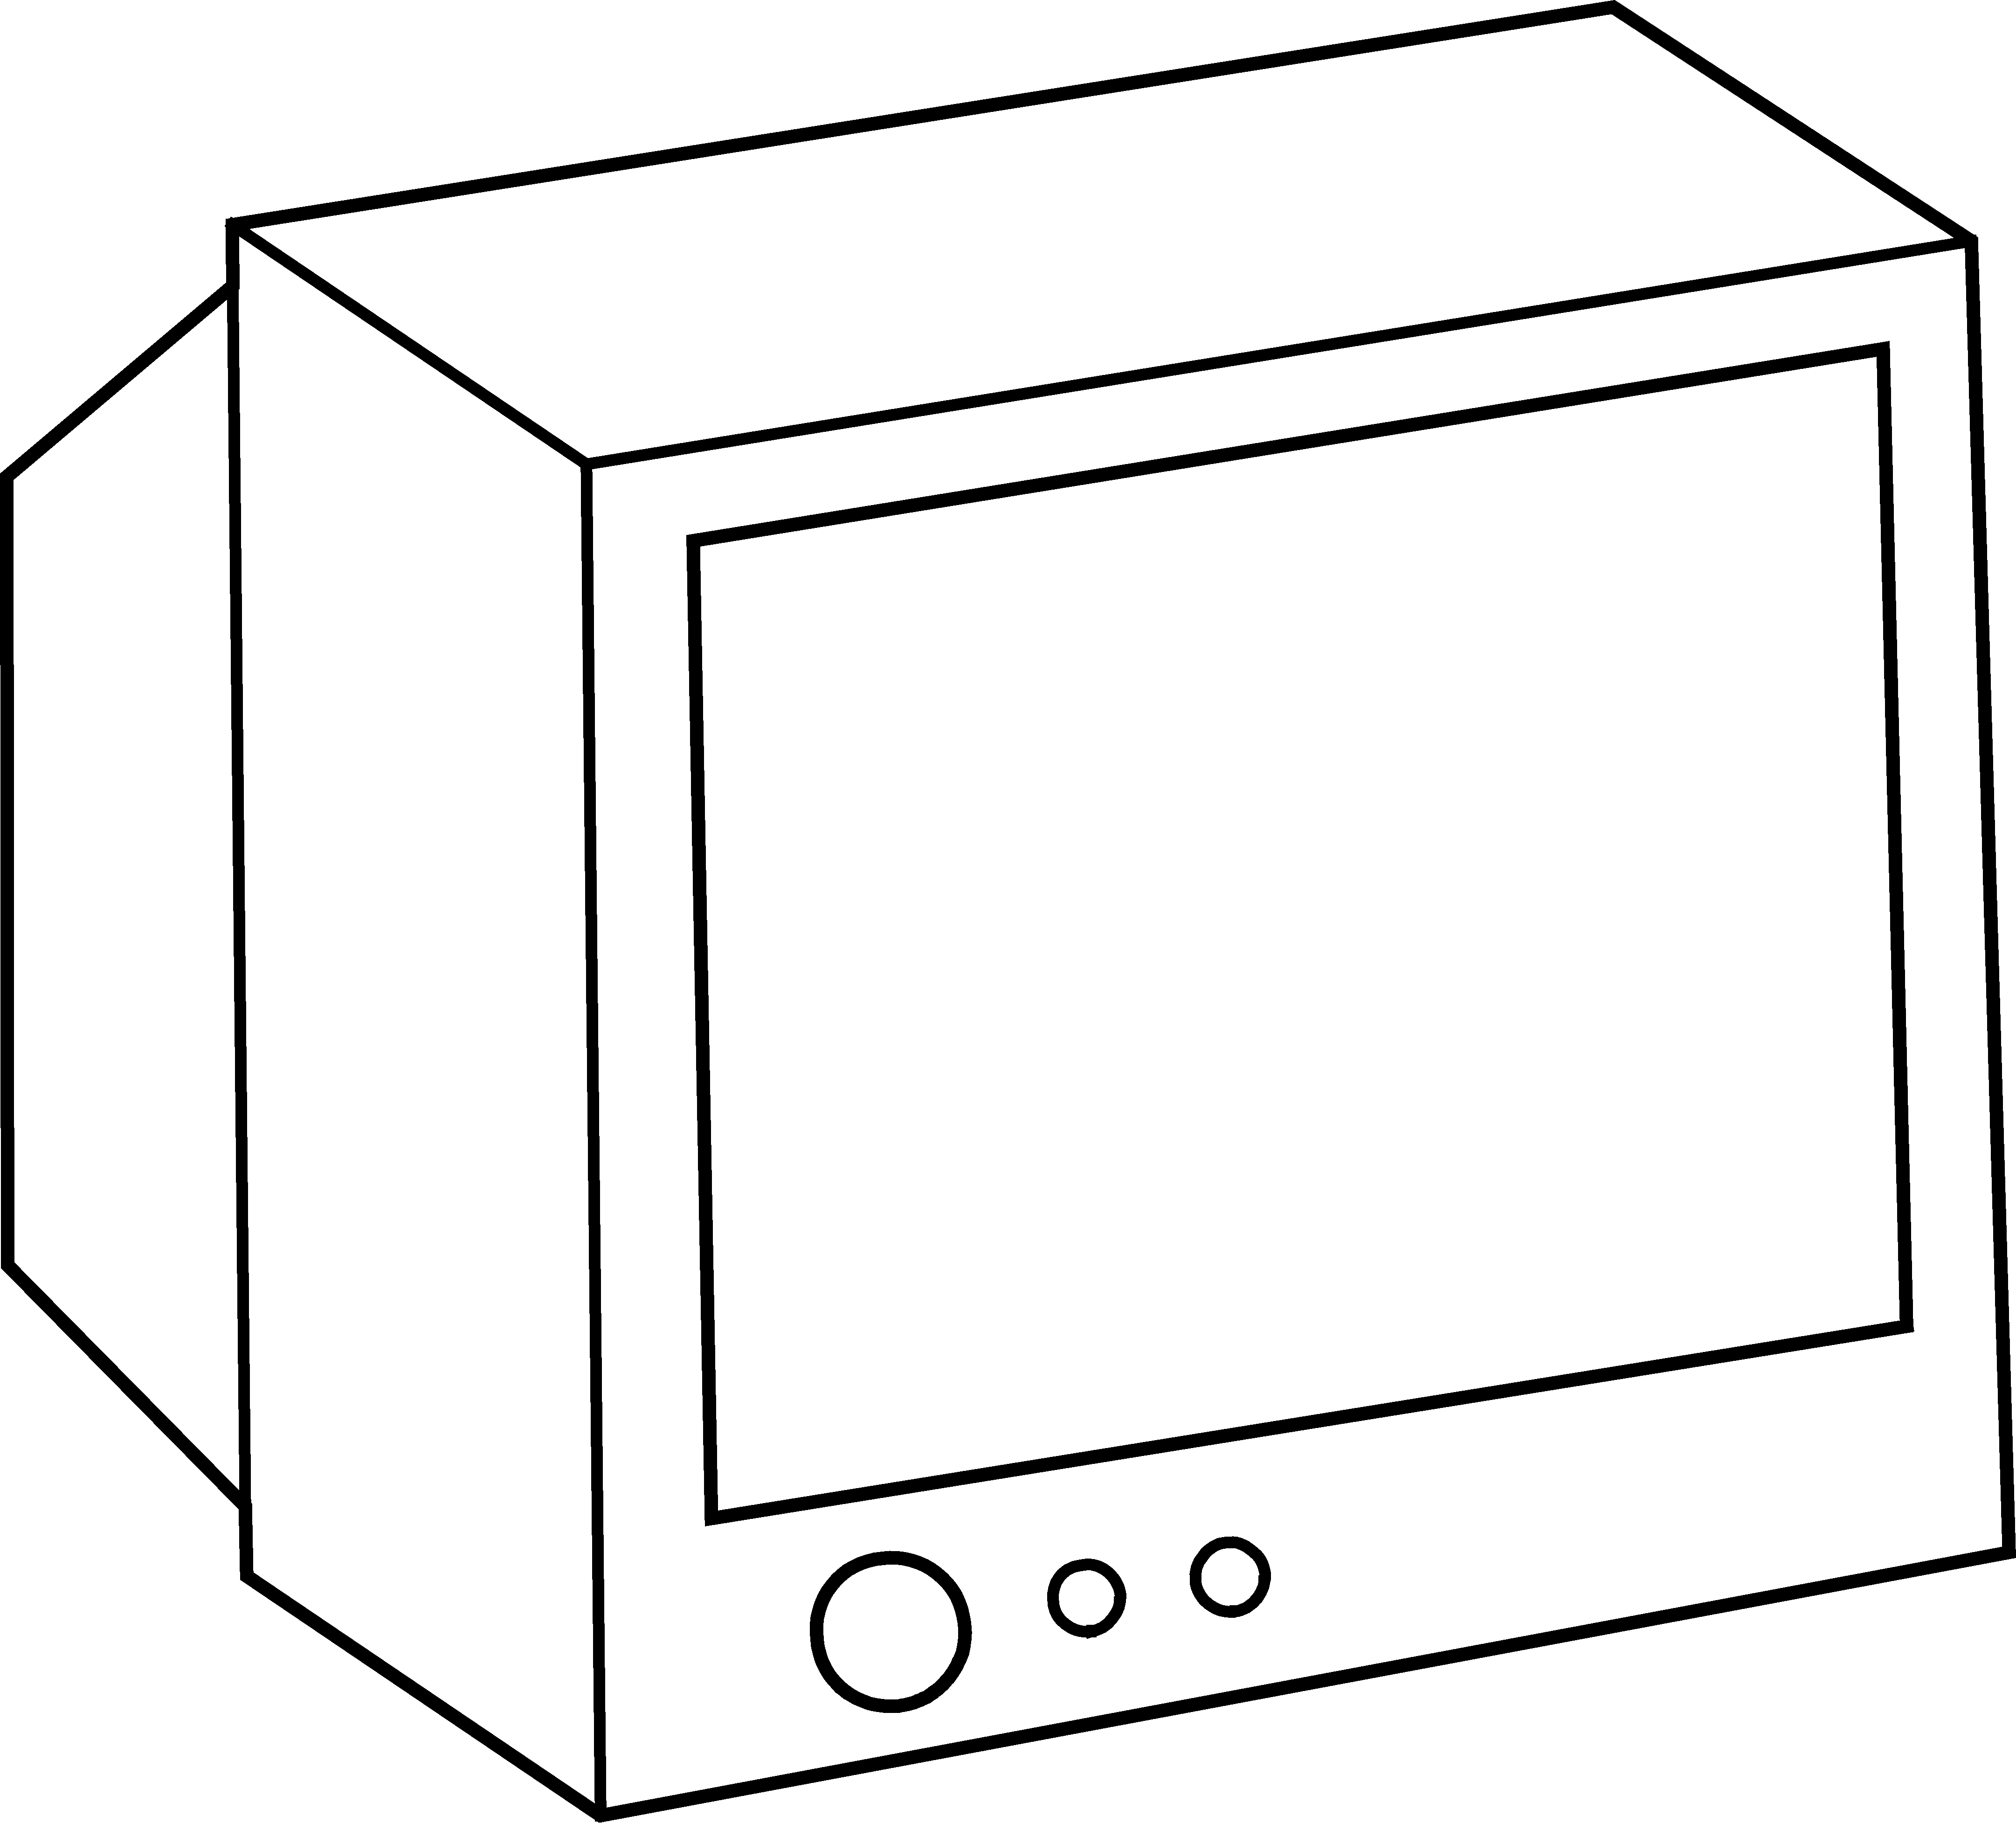 Television clipart tv remote. Panda free images televisionclipart